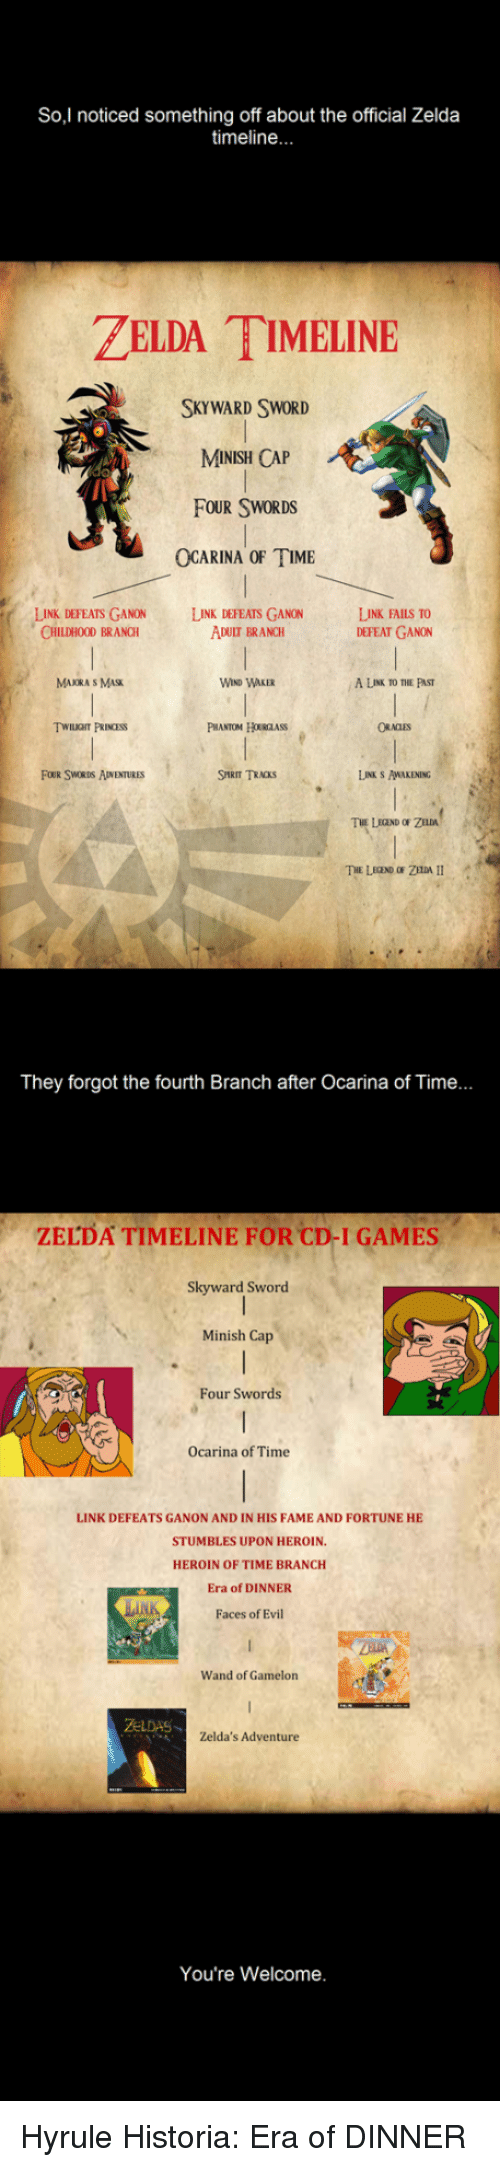 soi noticed something off about the official zelda timeline zelda